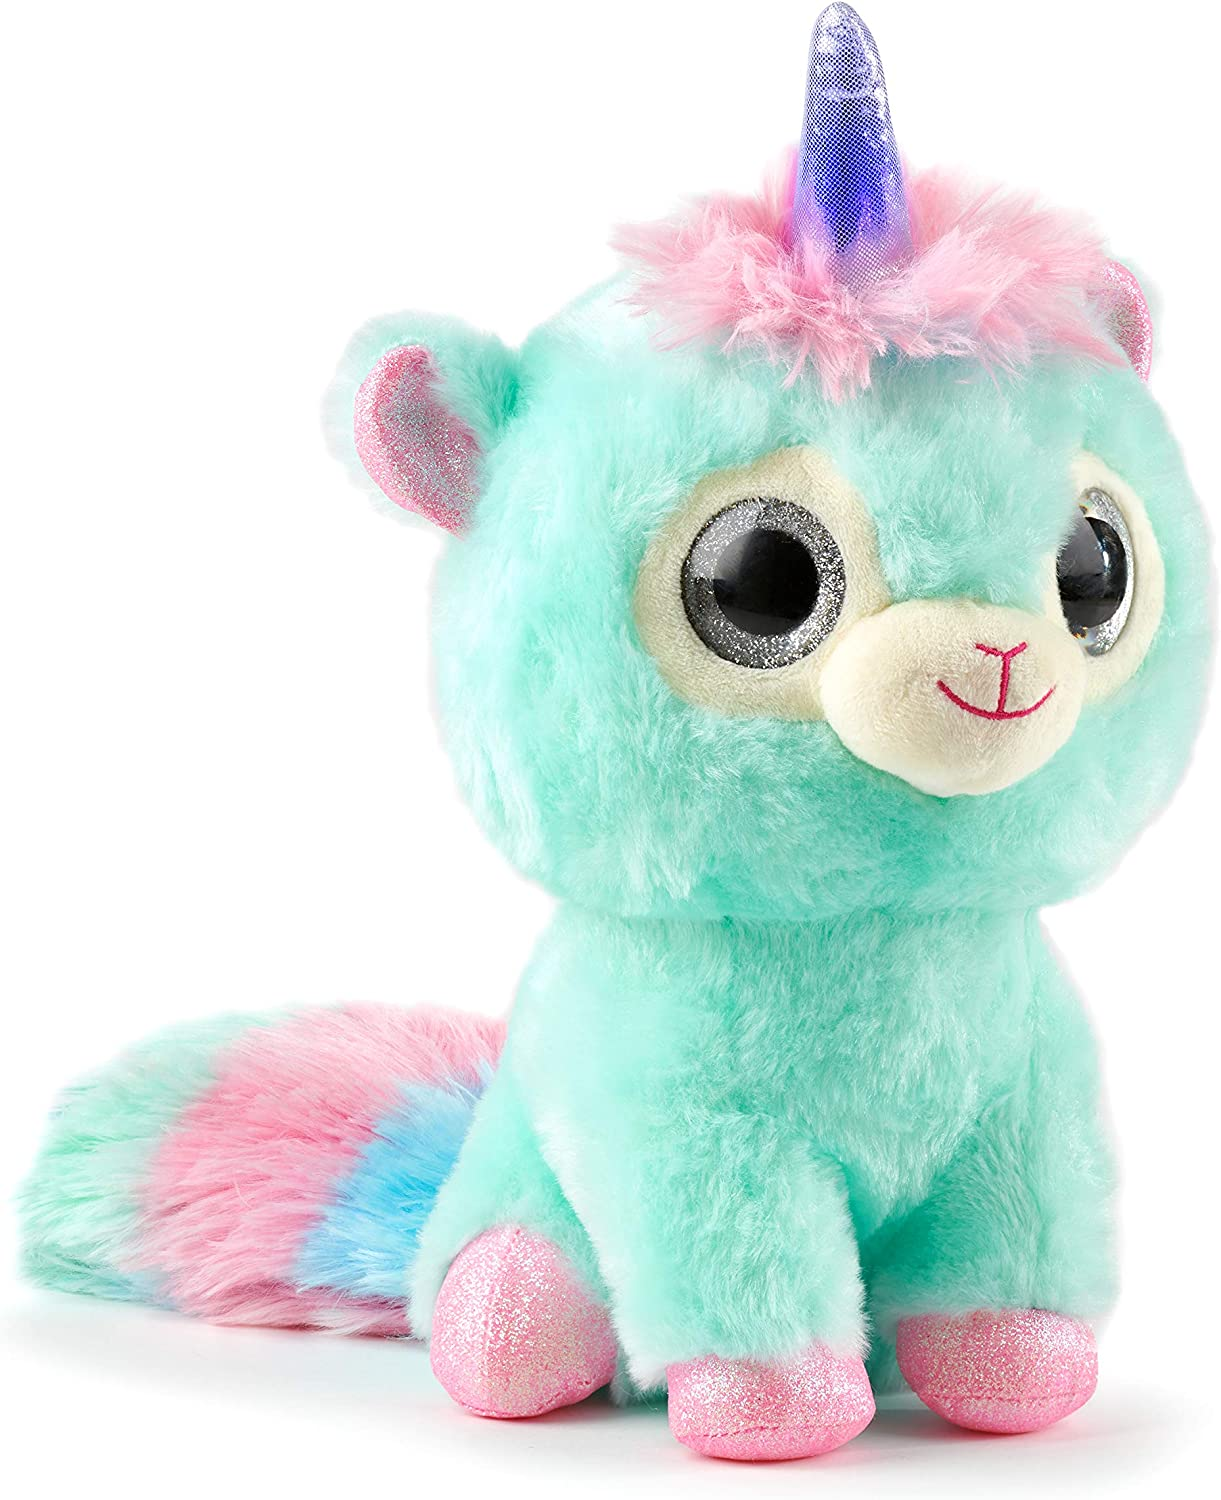 WowWee Ploosh Glowcorns - Llamacorn Interactive Plush with Light-up Horn